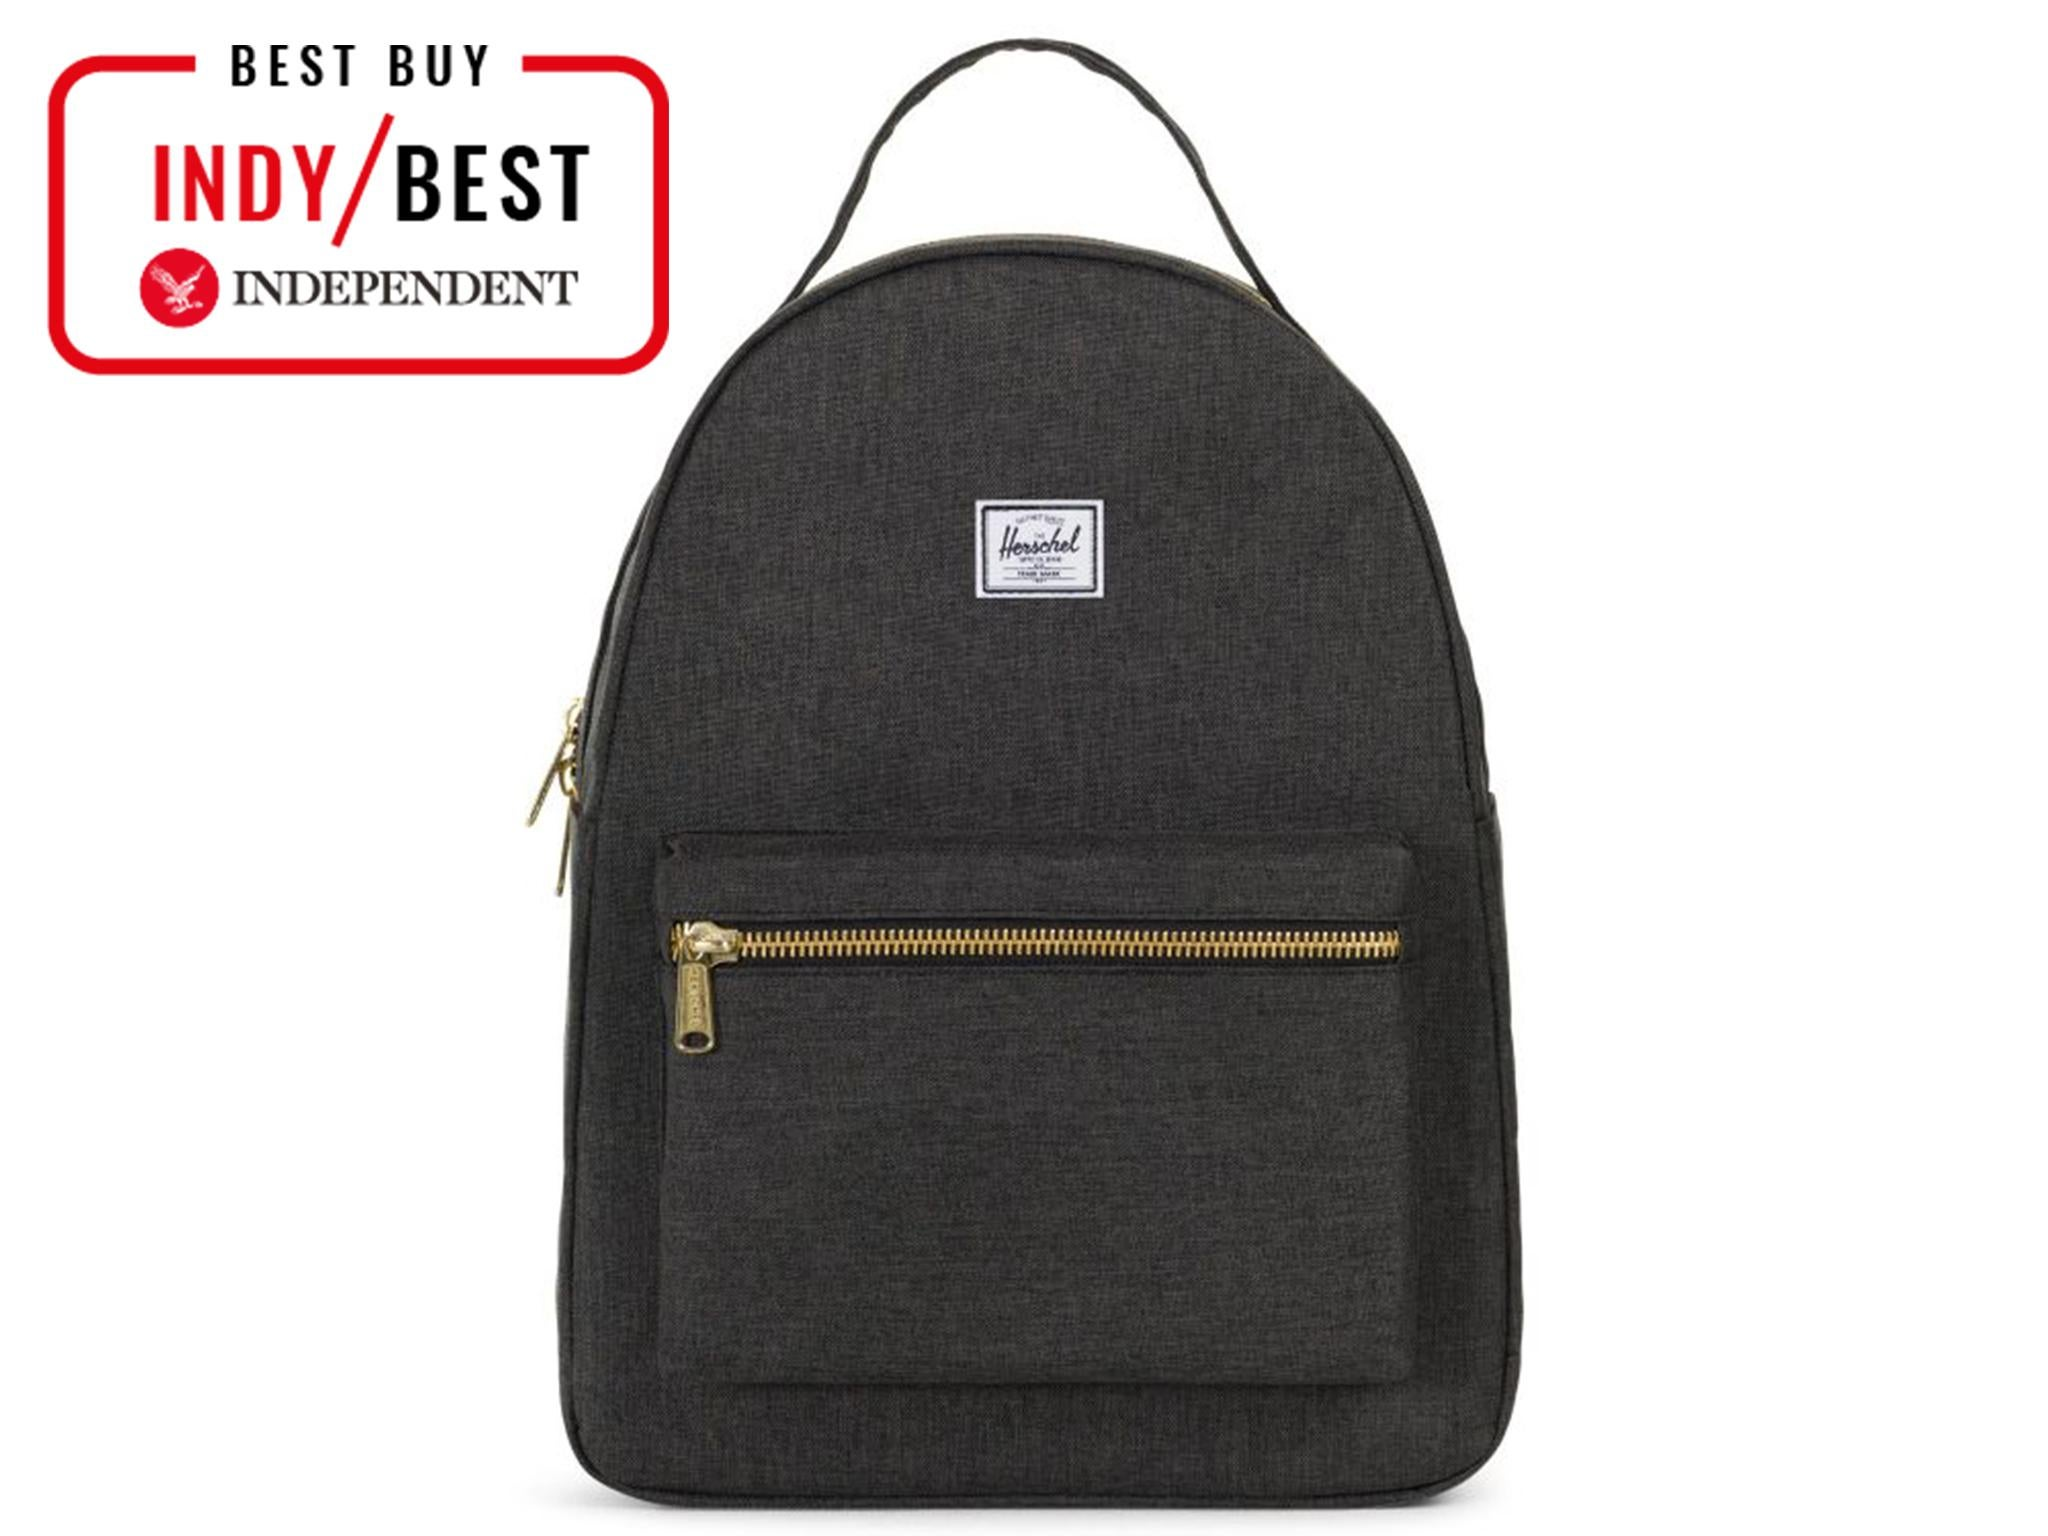 8 best backpacks for women   The Independent 52400d59eb